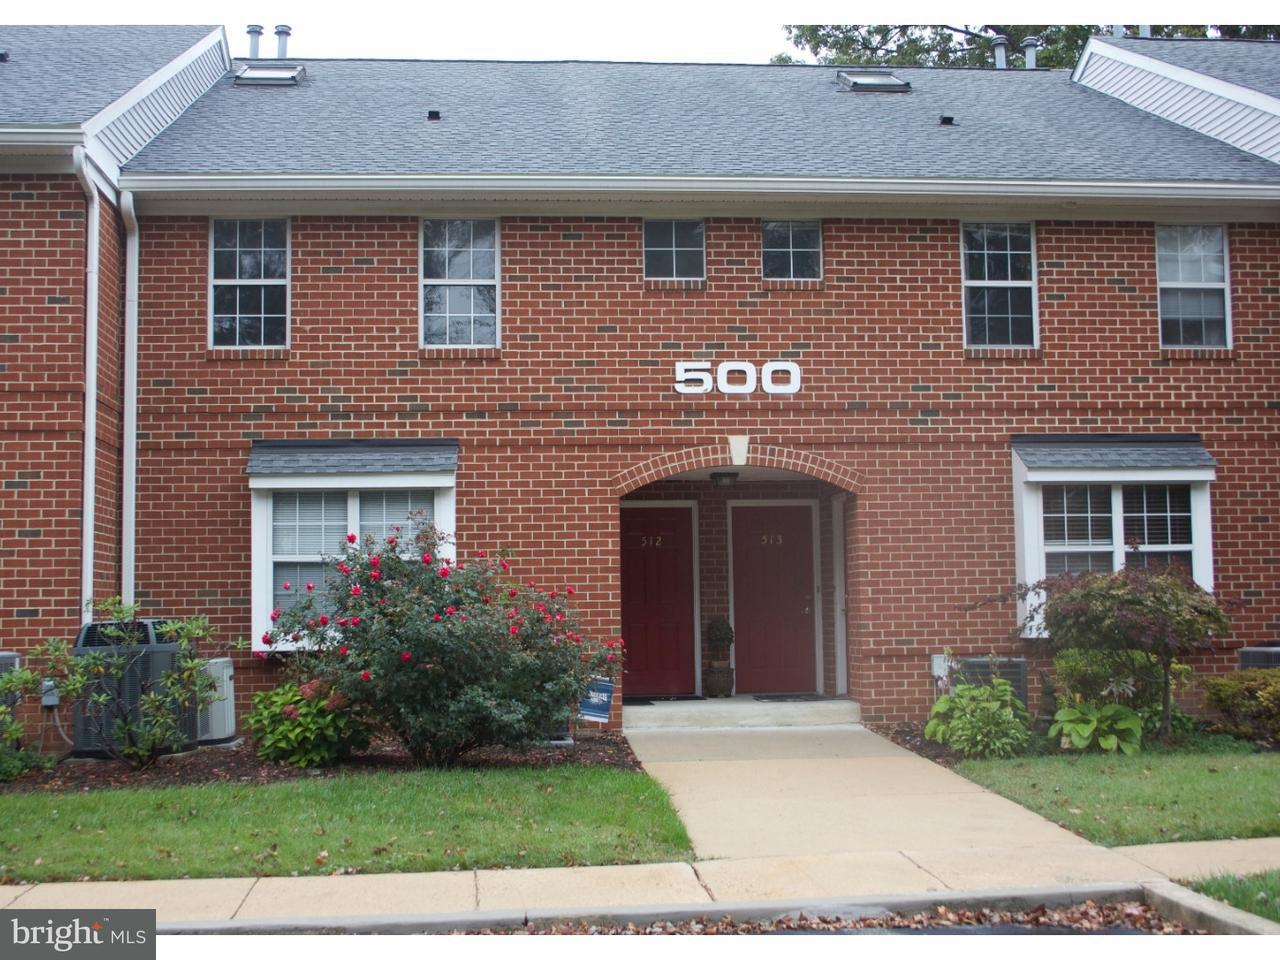 750 E Marshall West Chester, PA 19380